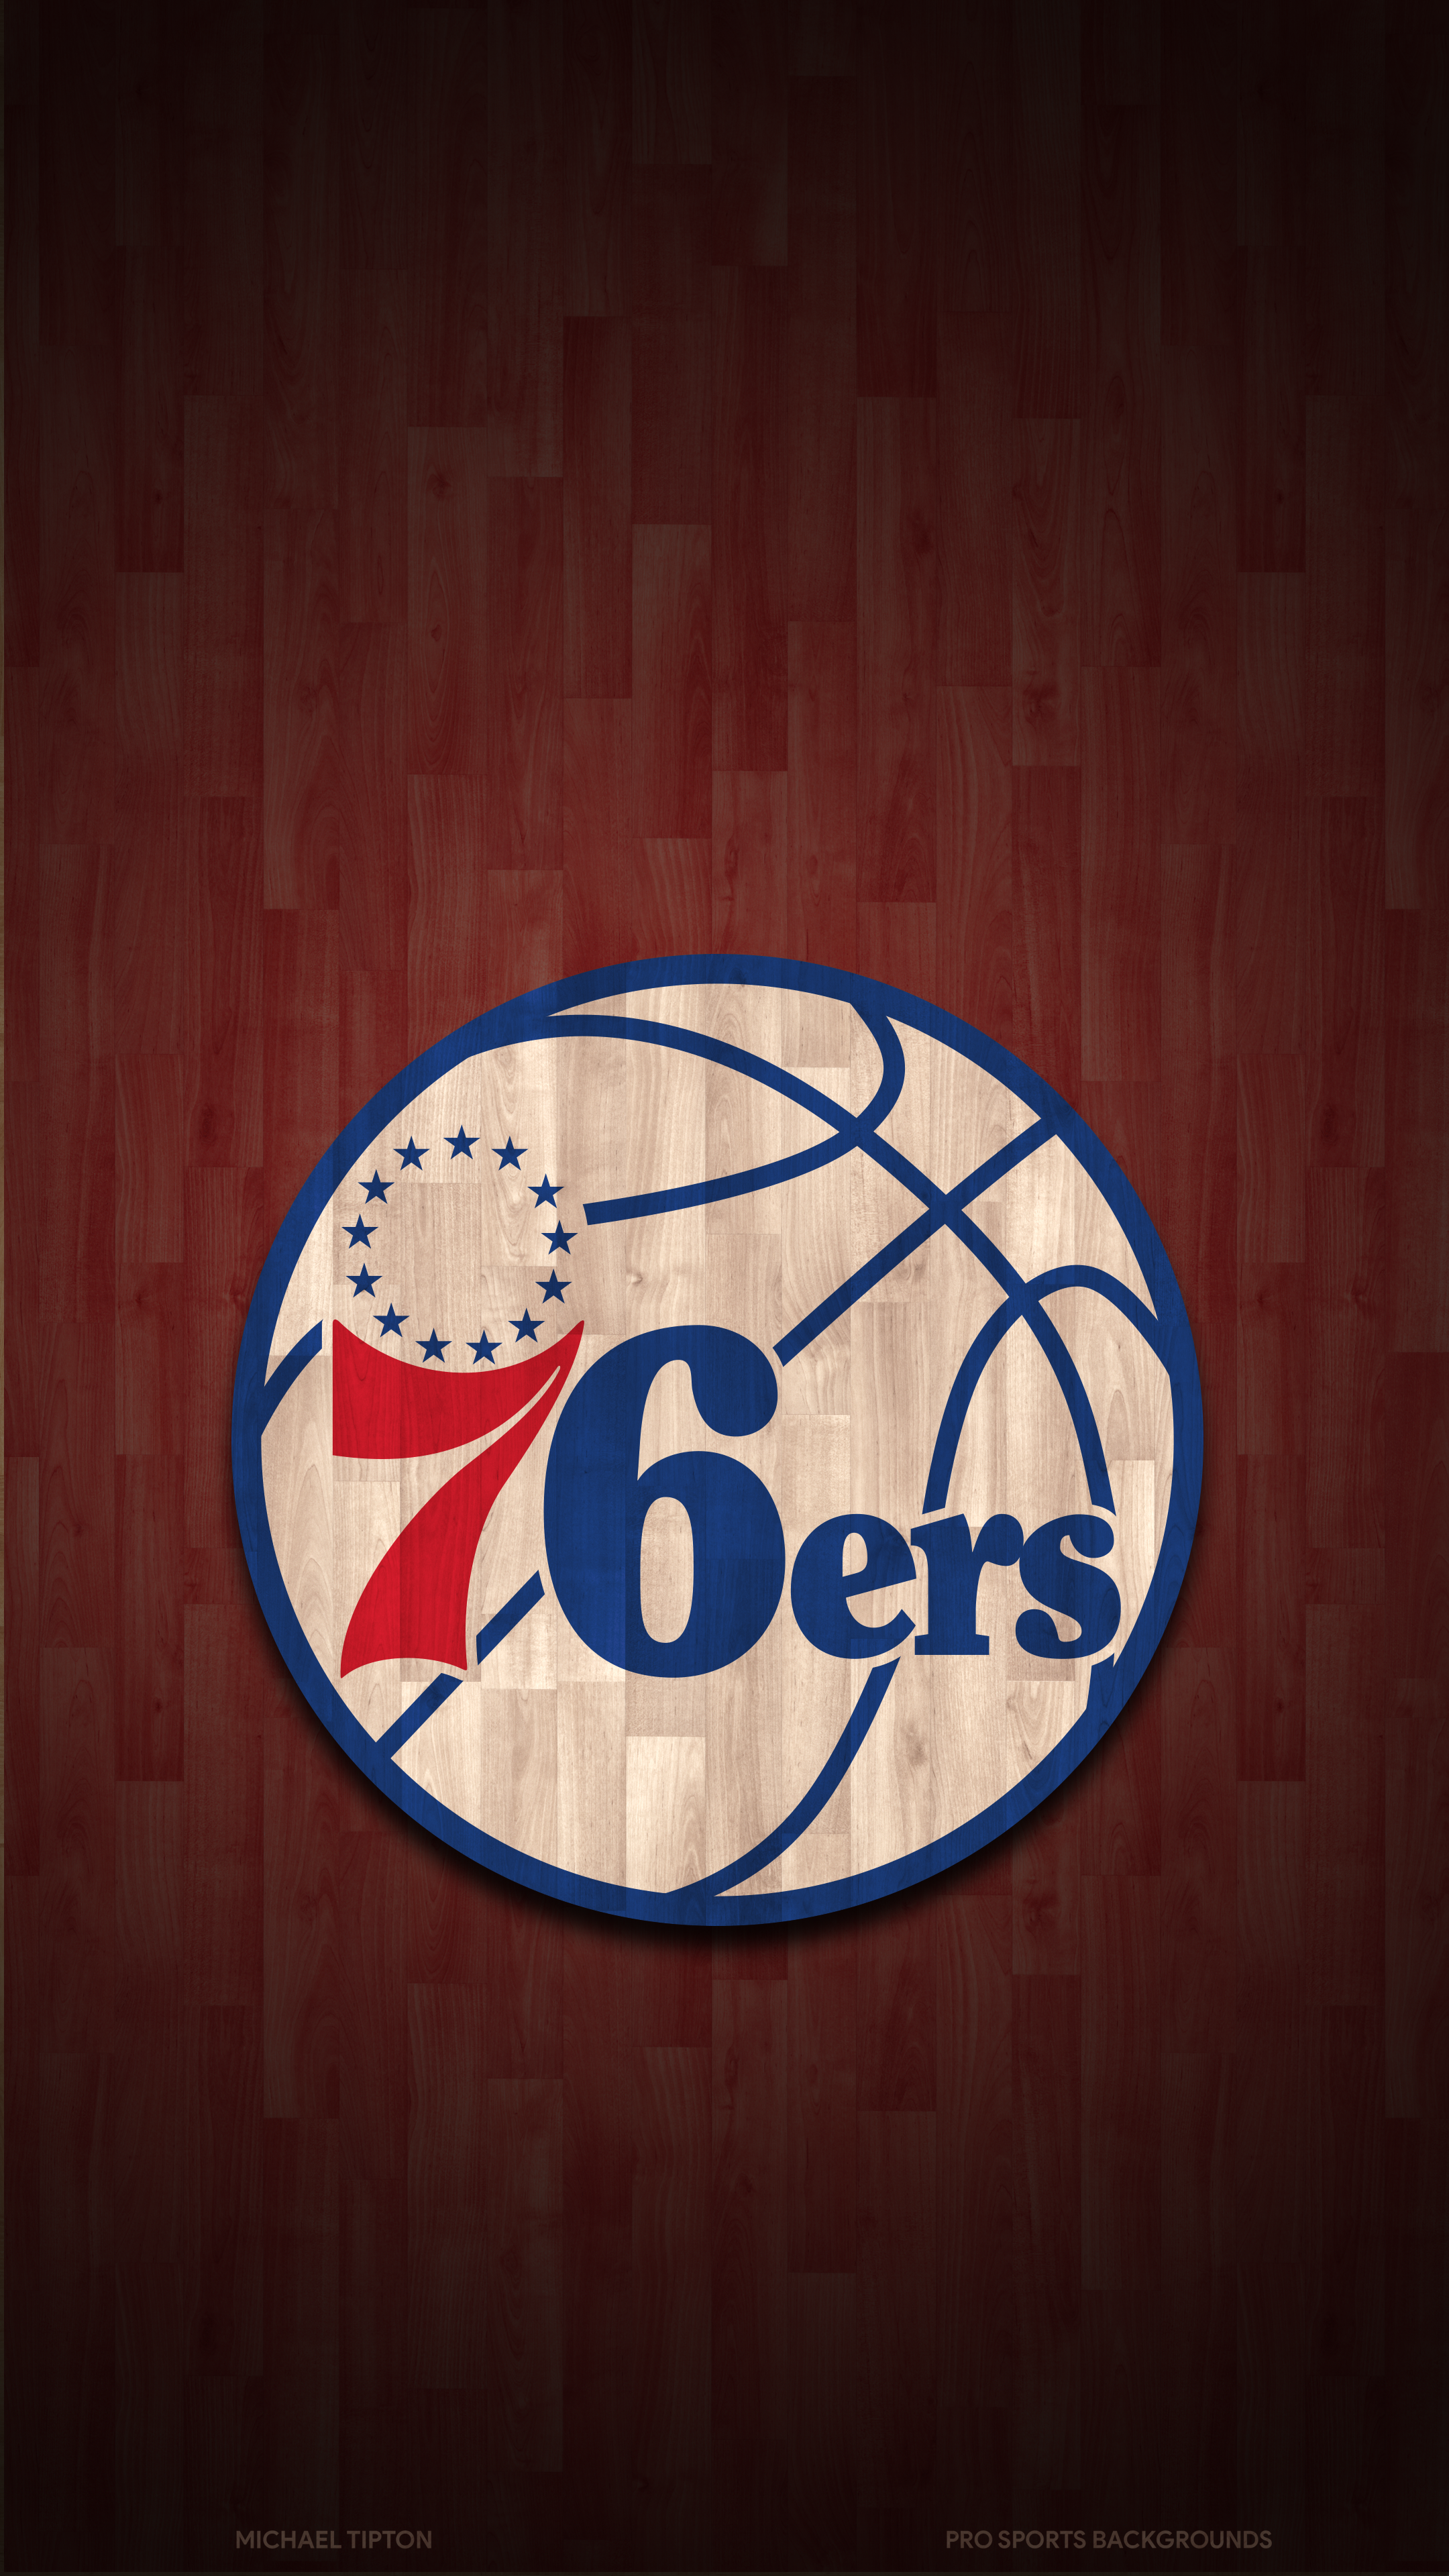 Philadelphia 76ers Wallpapers Pro Sports Backgrounds